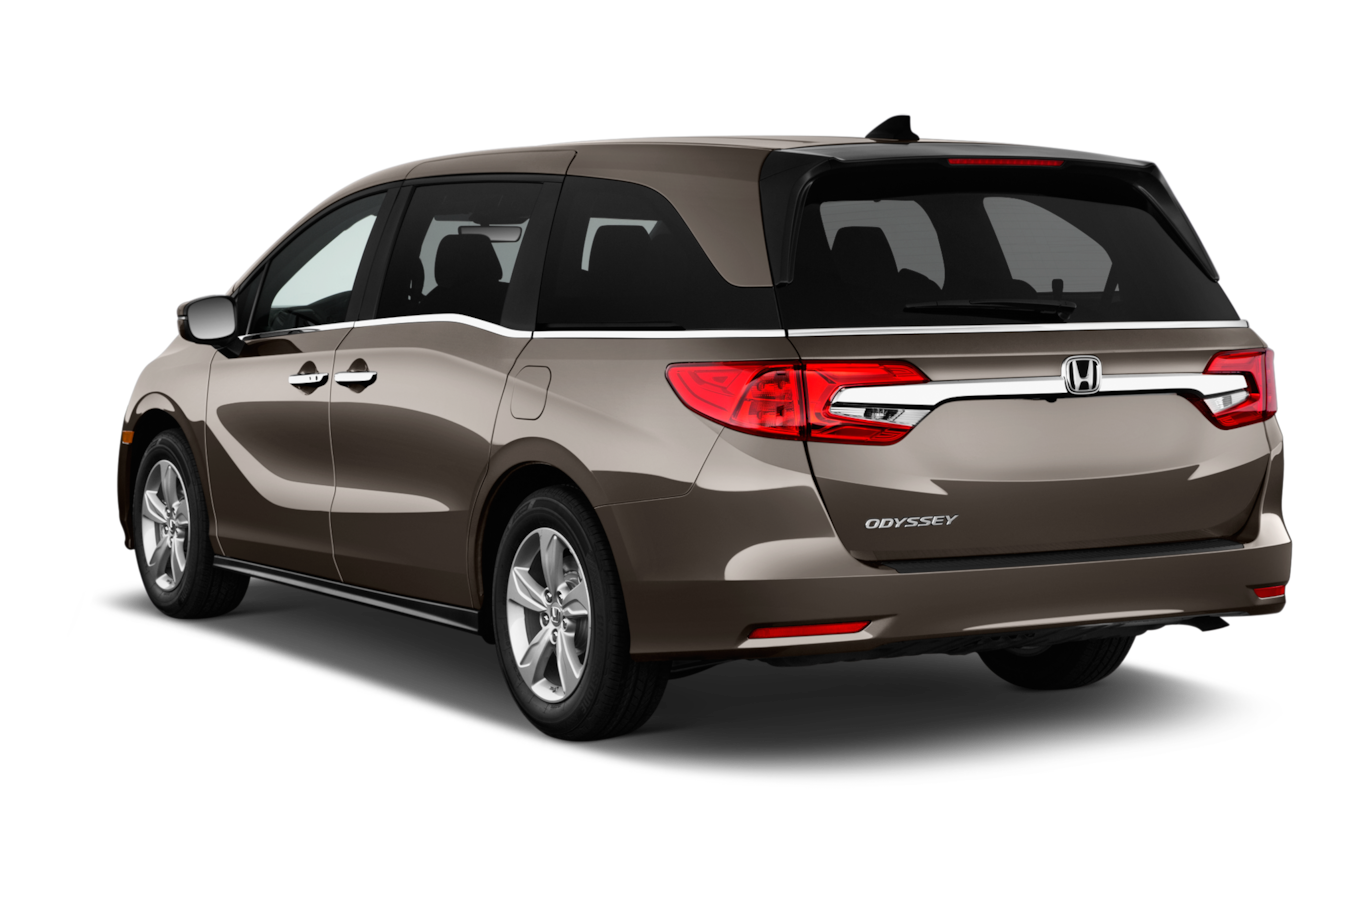 56 All New Honda Odyssey 2019 Vs 2020 Price Design And Review